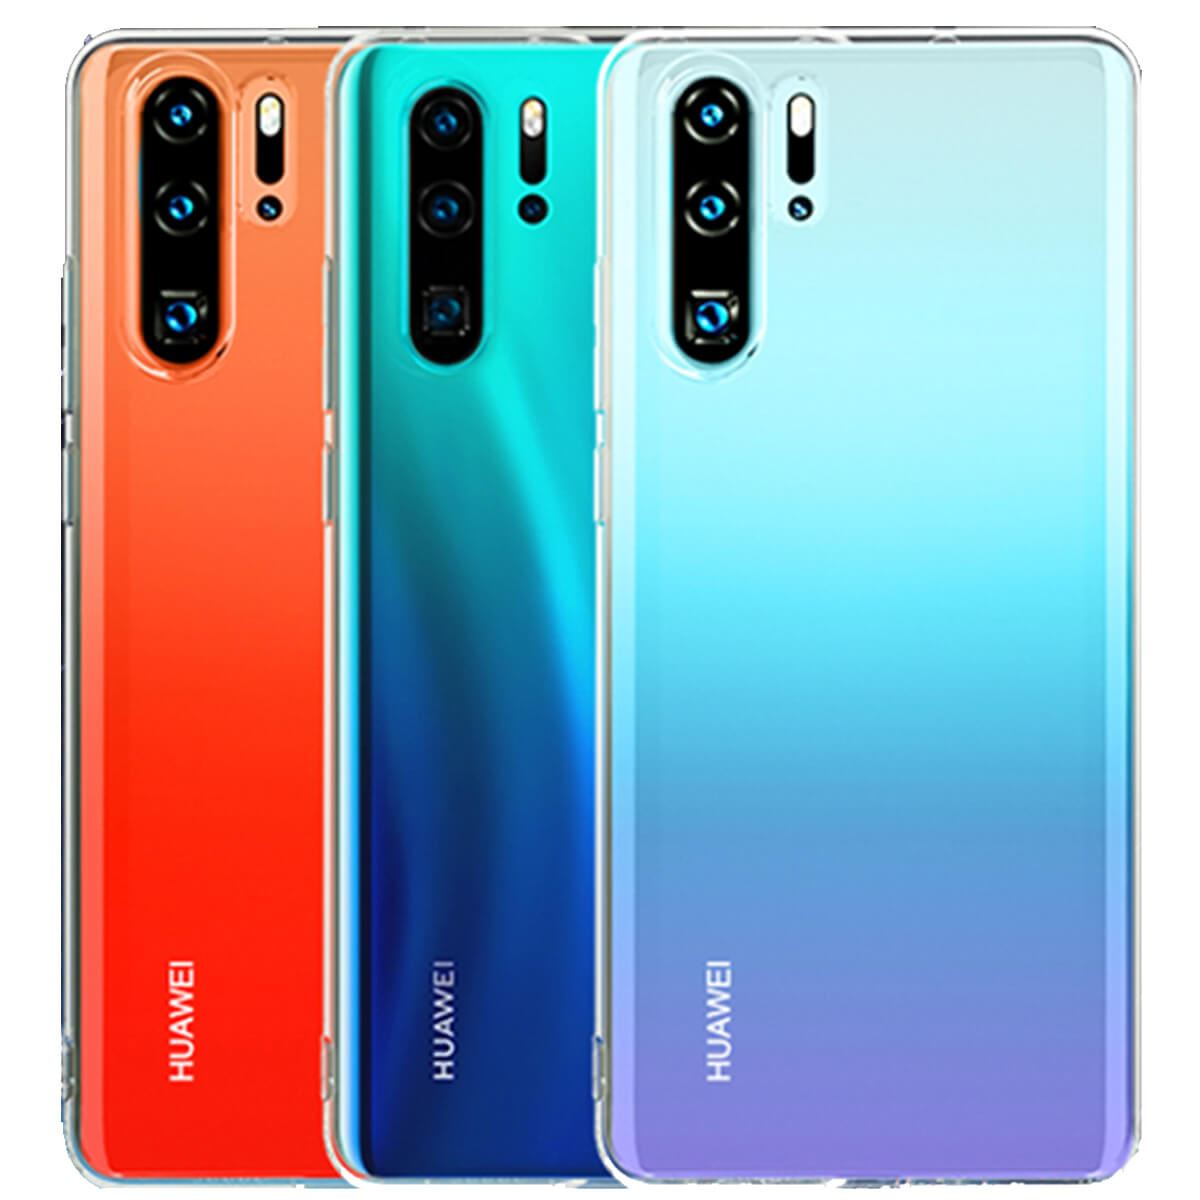 Case-For-Huawei-P20-Pro-P-Smart-Shockproof-Silicone-Protective-Clear-Gel-Cover thumbnail 7